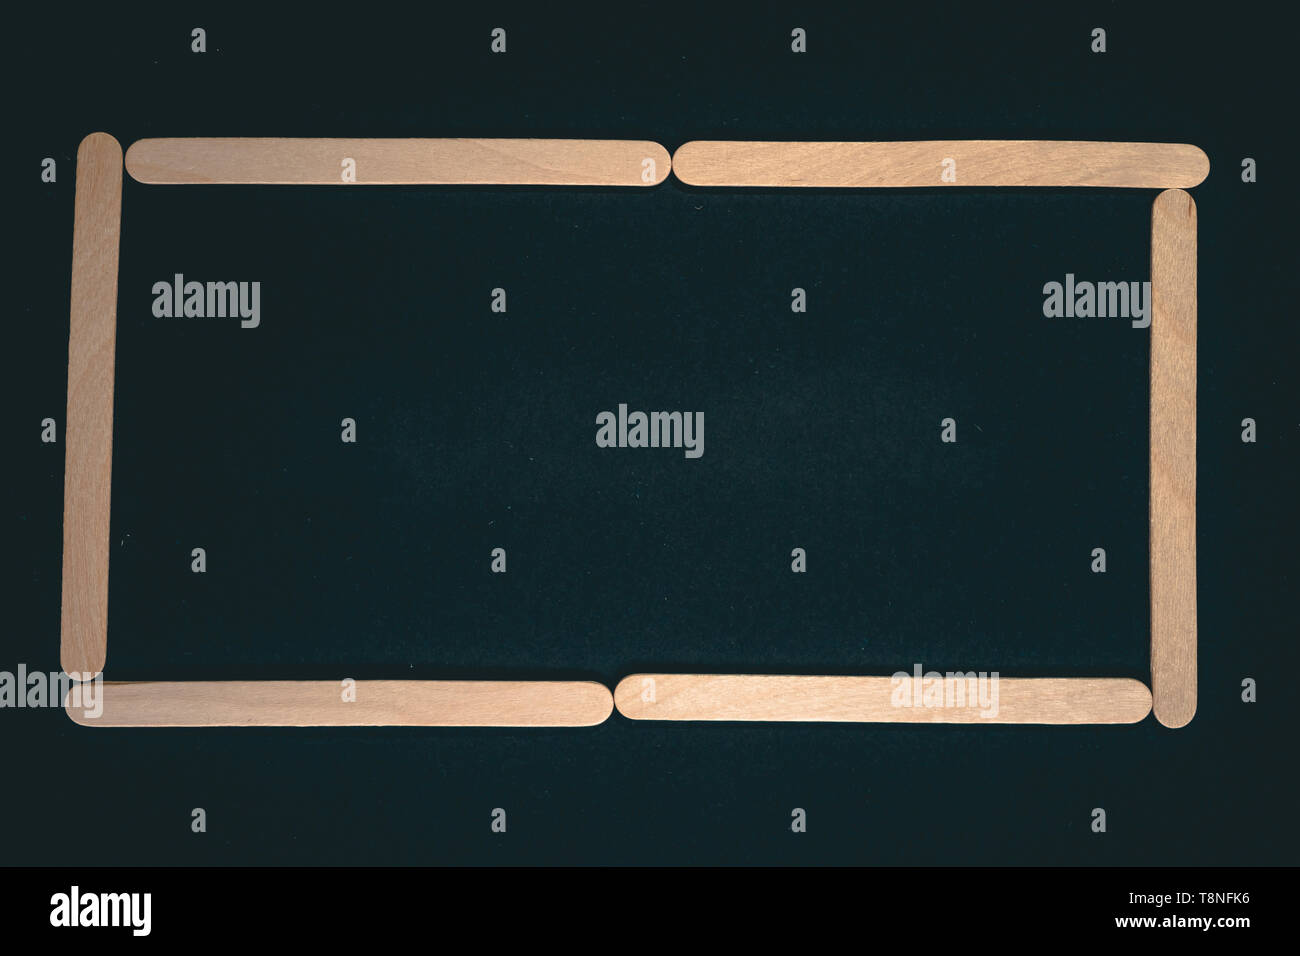 Numbers made of wood sticks isolated on black background - Stock Image